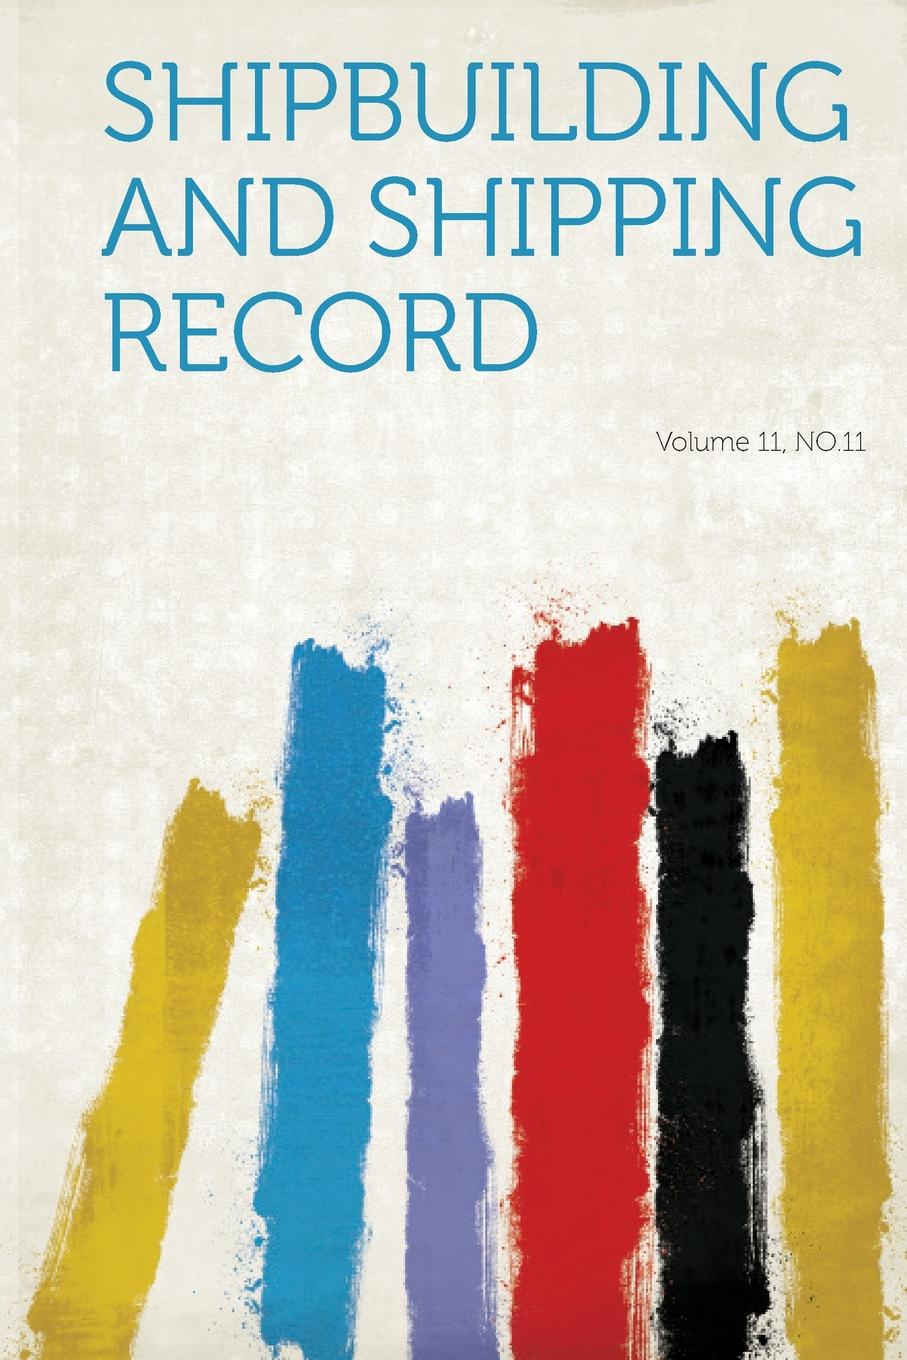 Shipbuilding and Shipping Record Volume 11, No.11